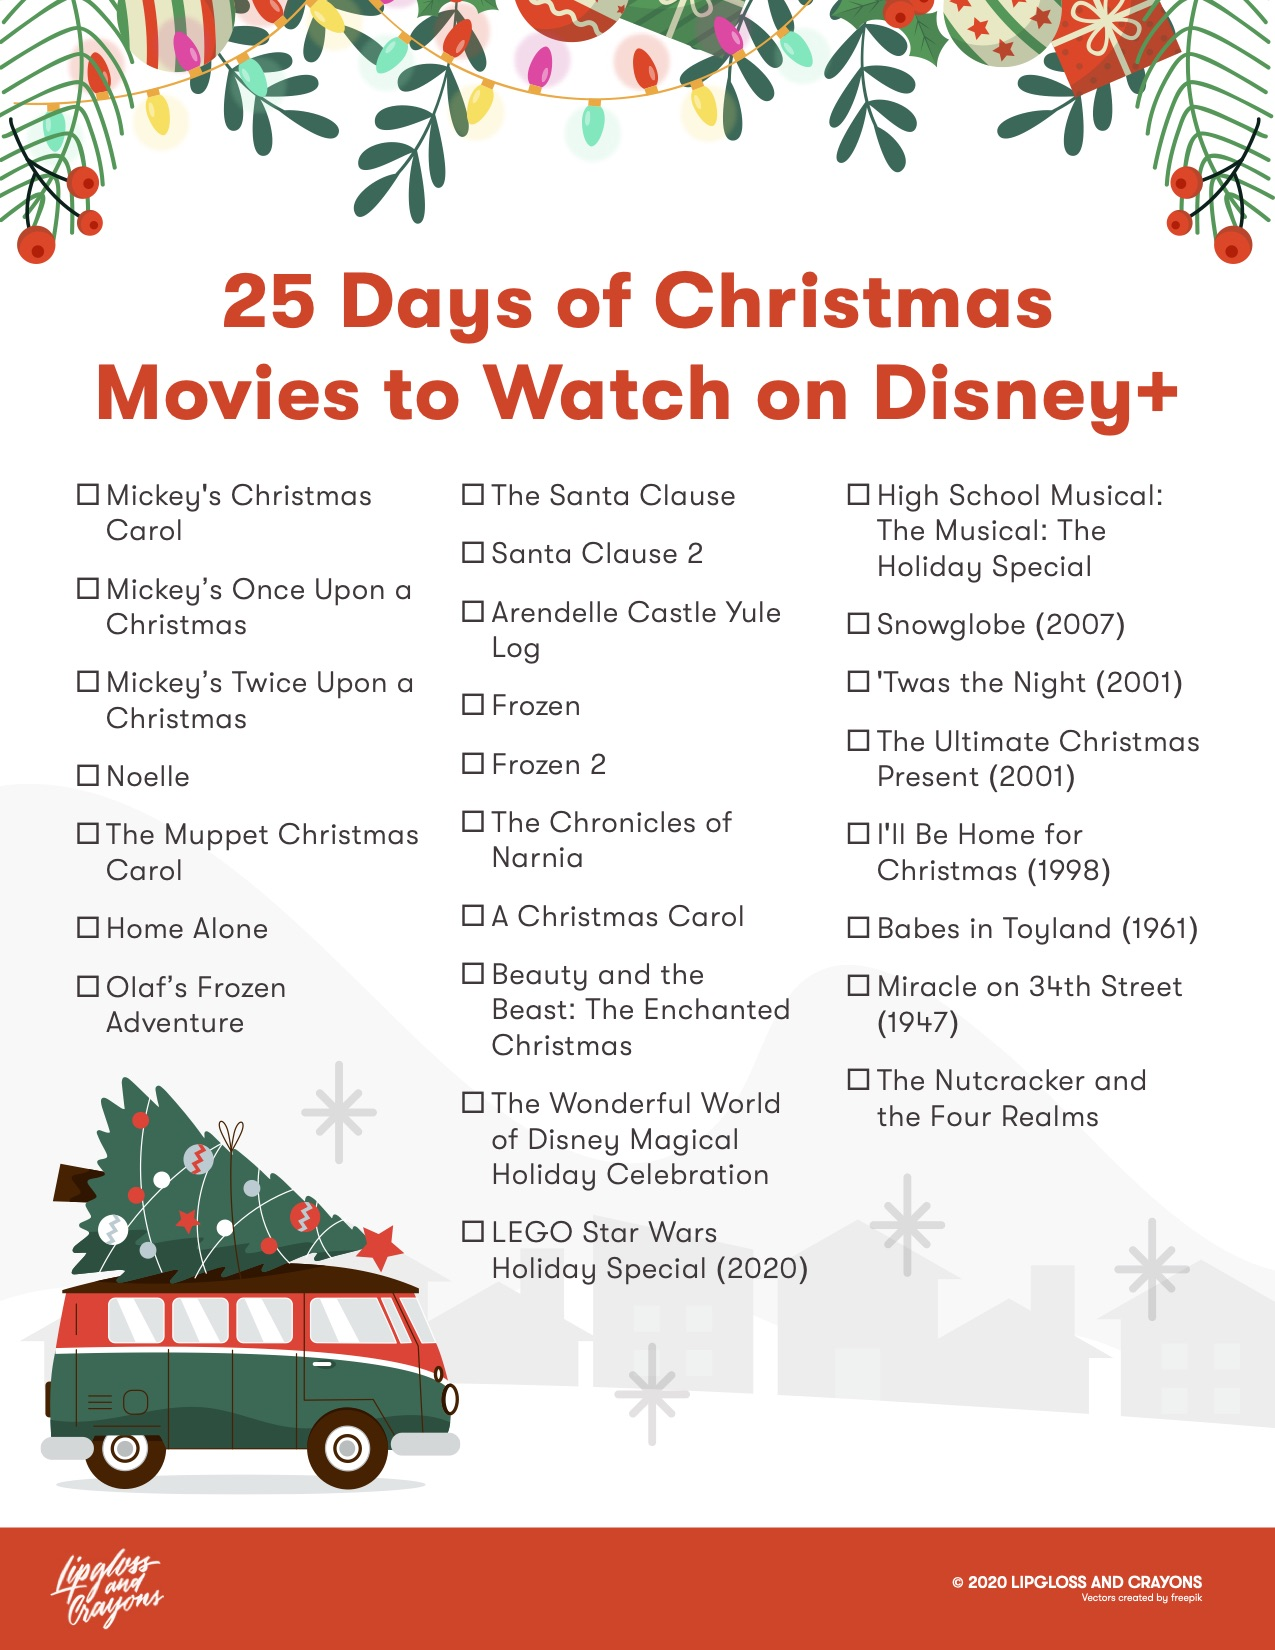 Gearing up for the holidays? This 25 Days of Christmas Disney+ checklist is the ultimate Disney Christmas Movie watchlist!